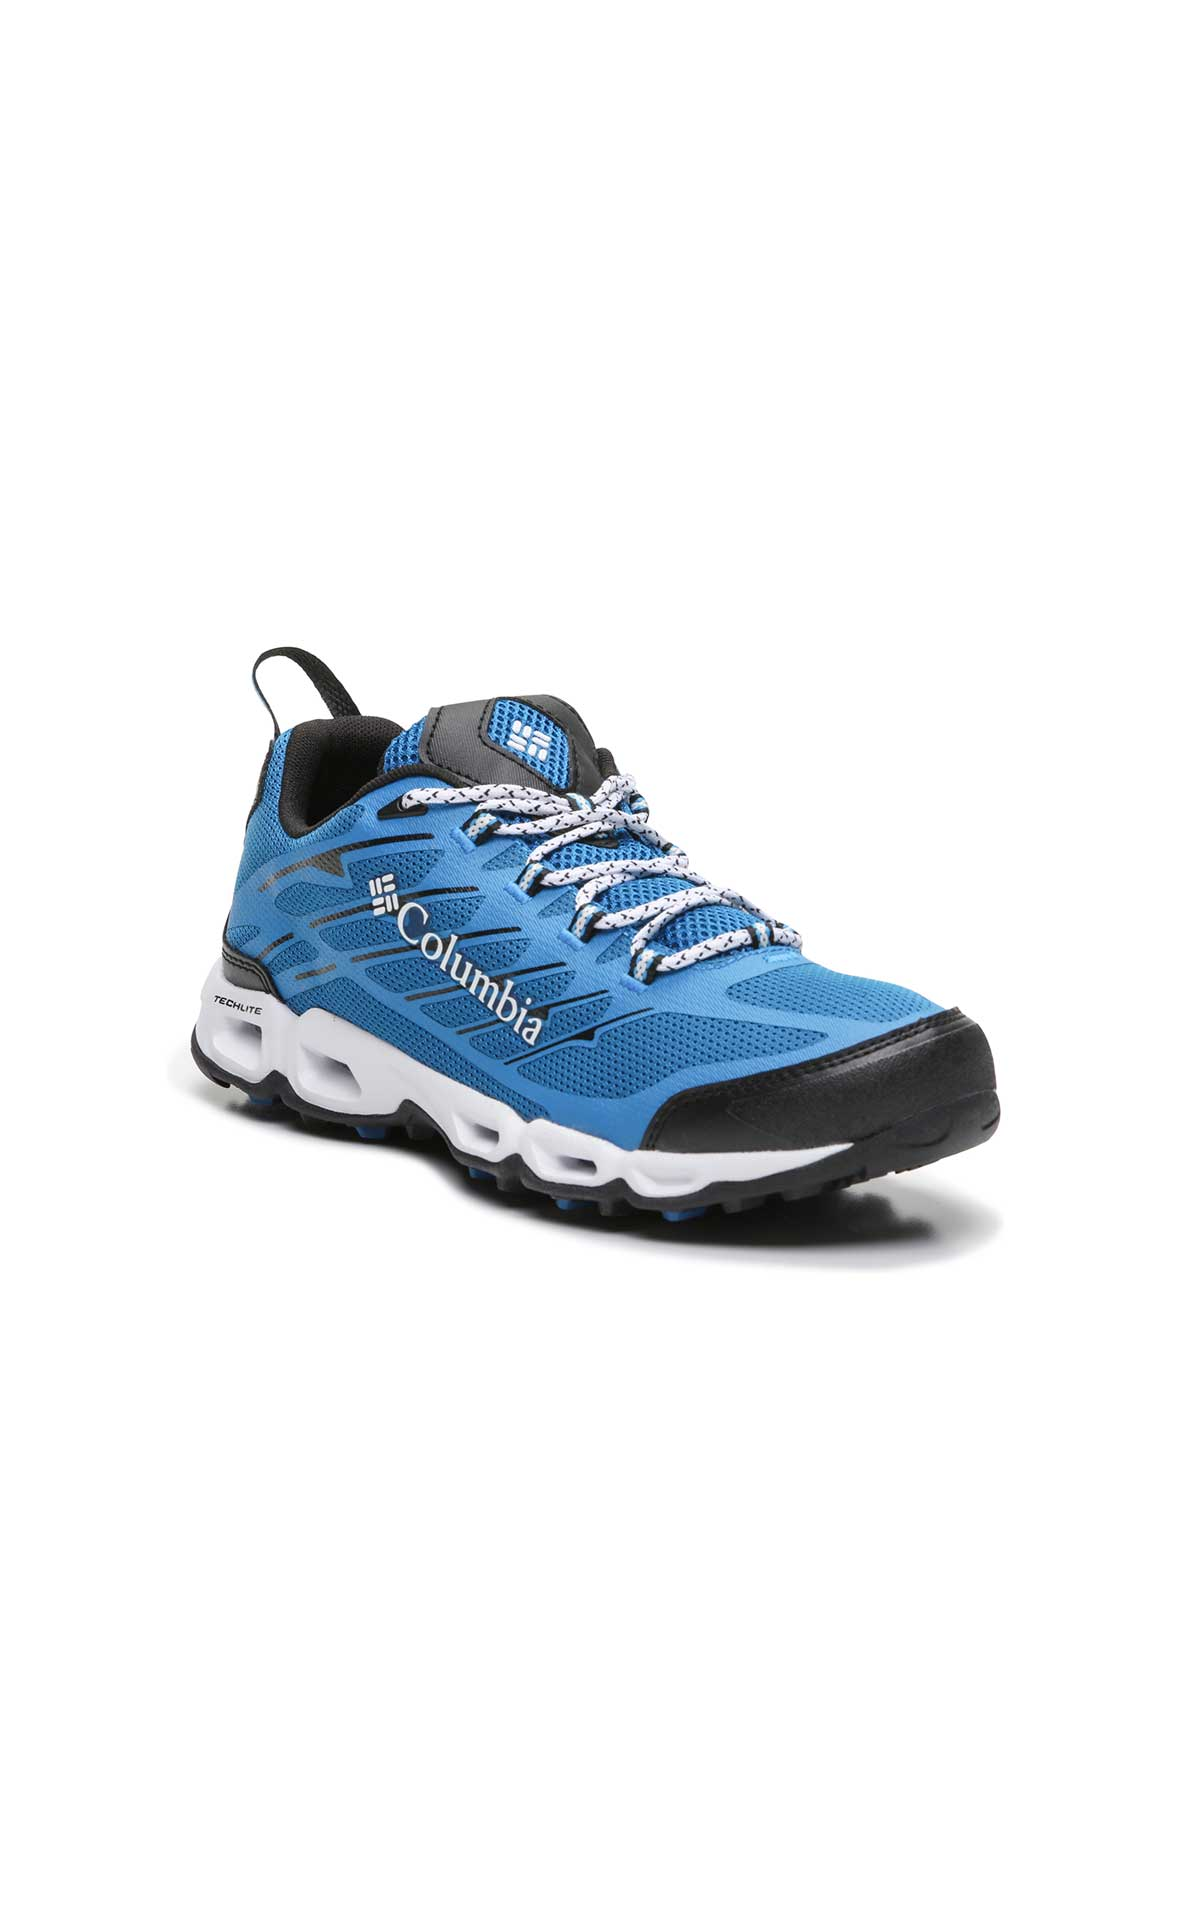 Blue mountain sneakers for man Columbia